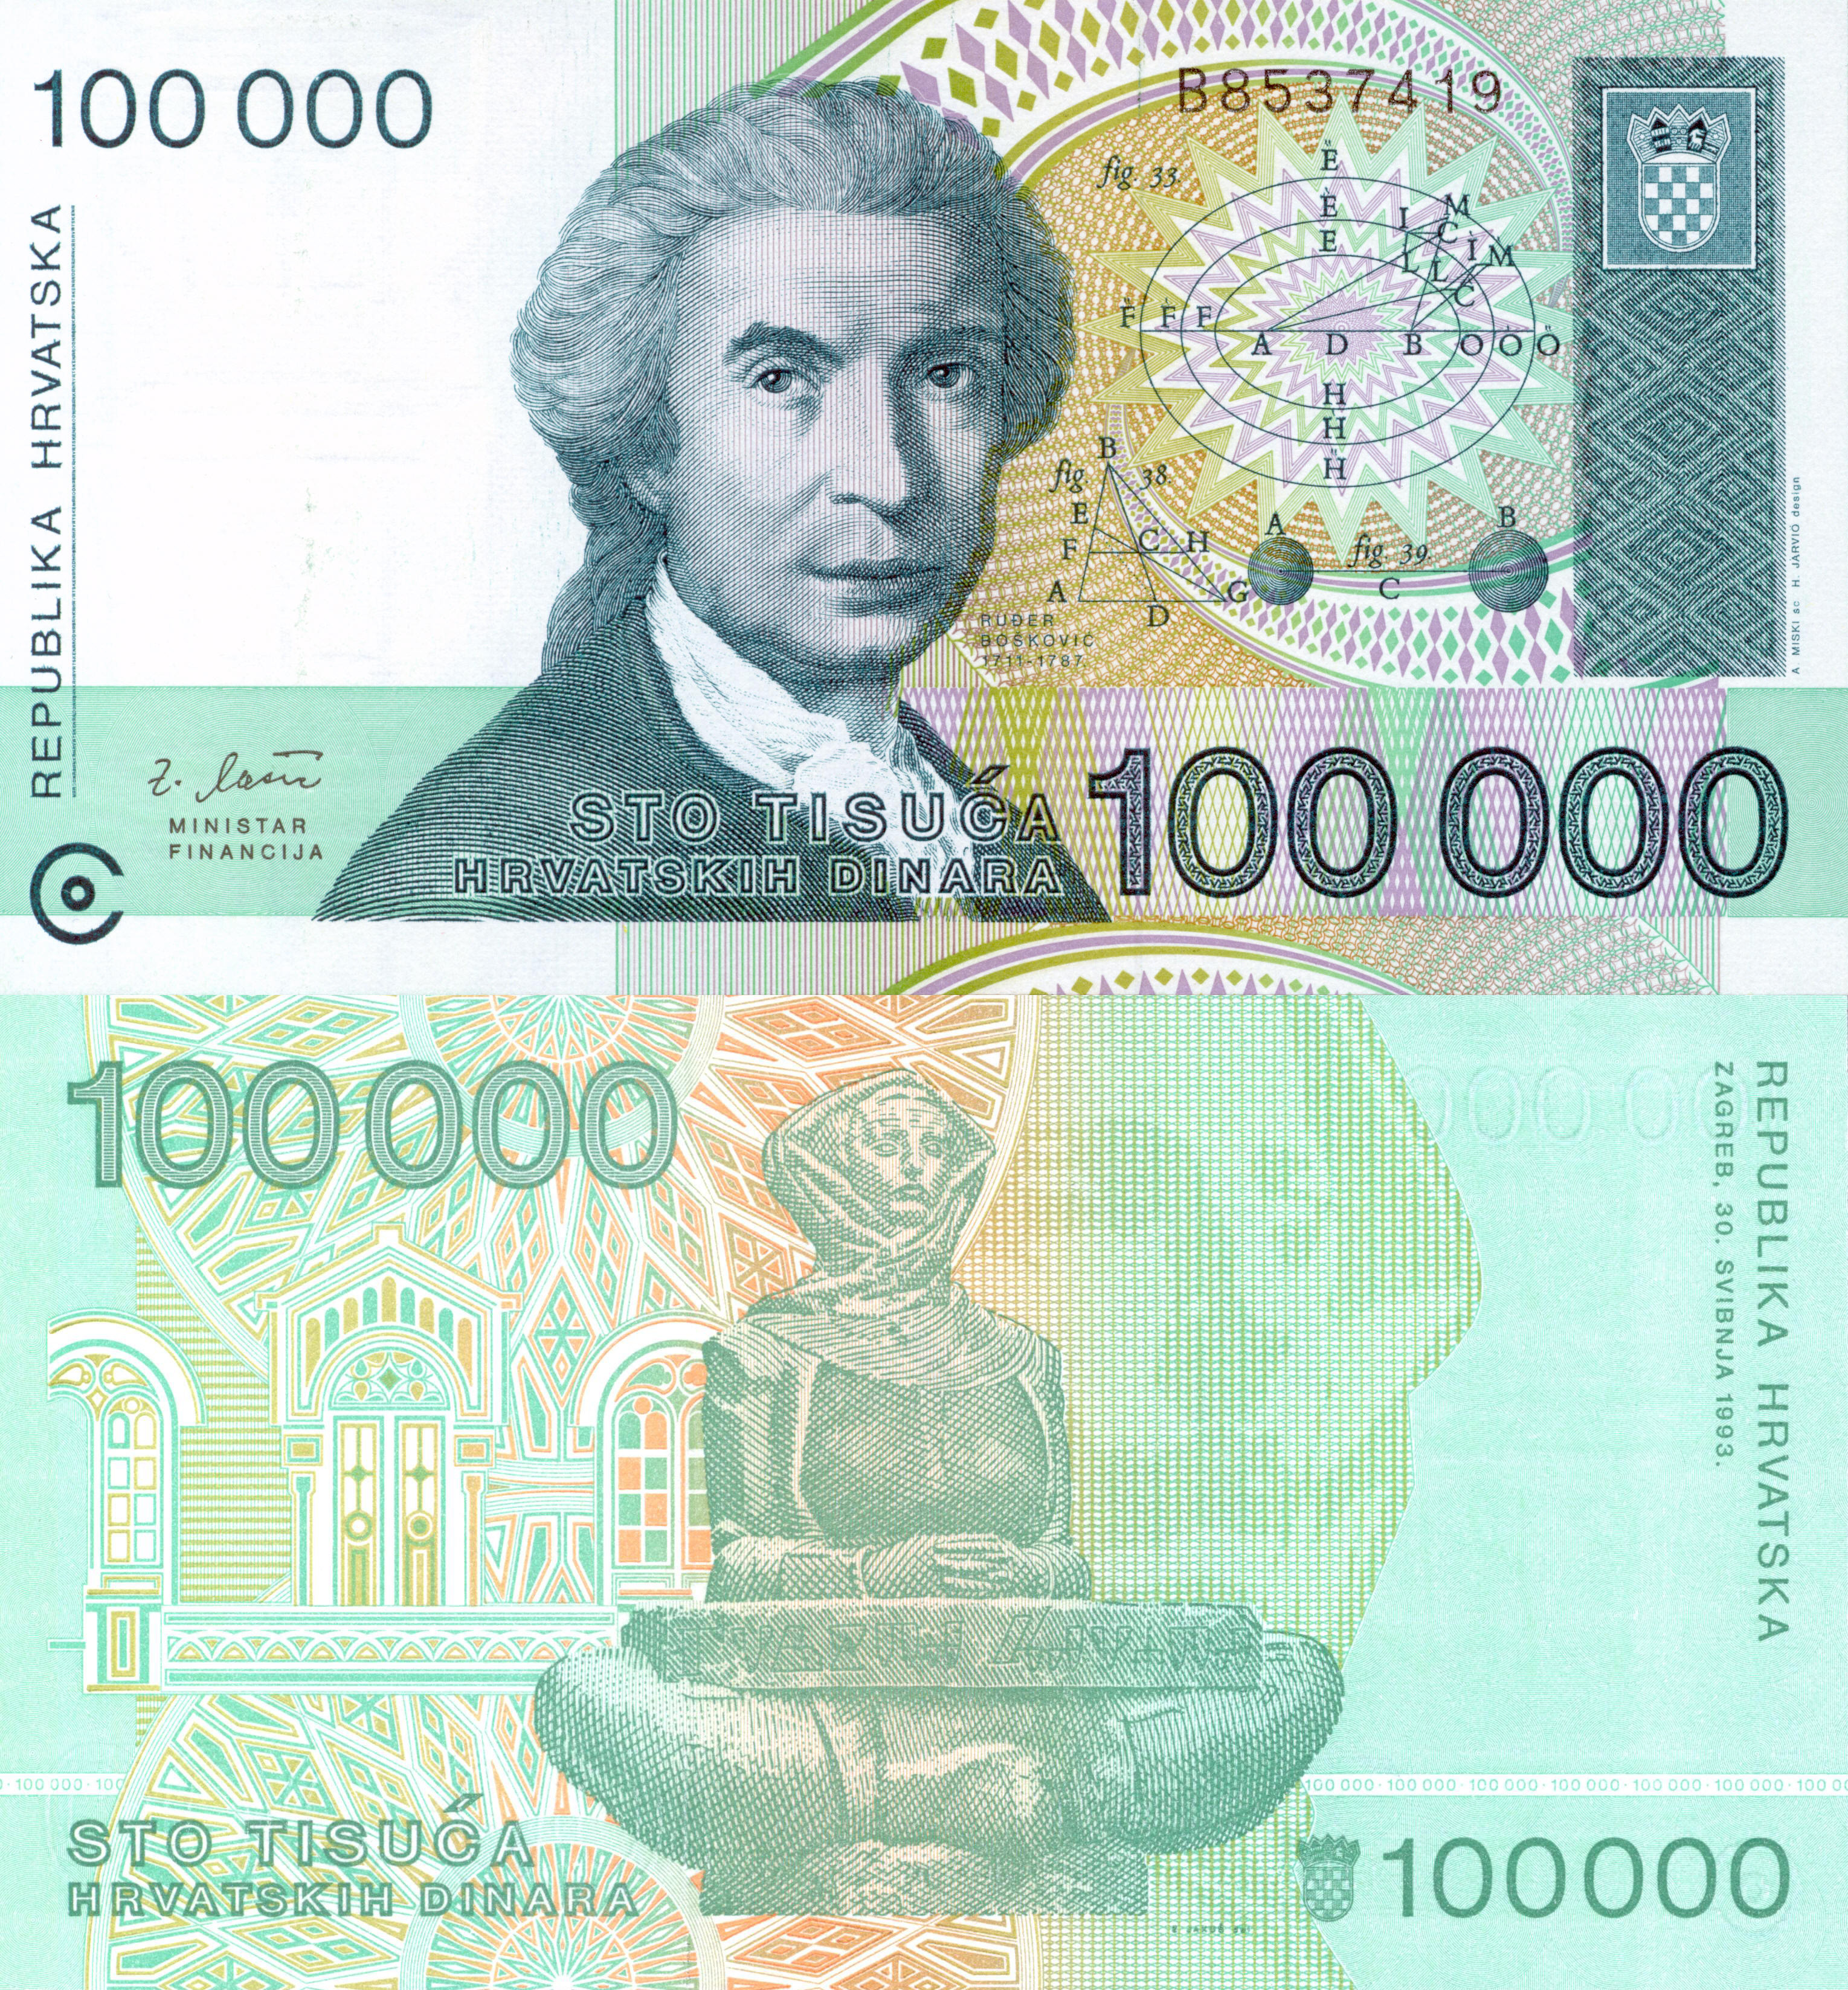 Physicists on Banknotes - Jacob Bourjaily